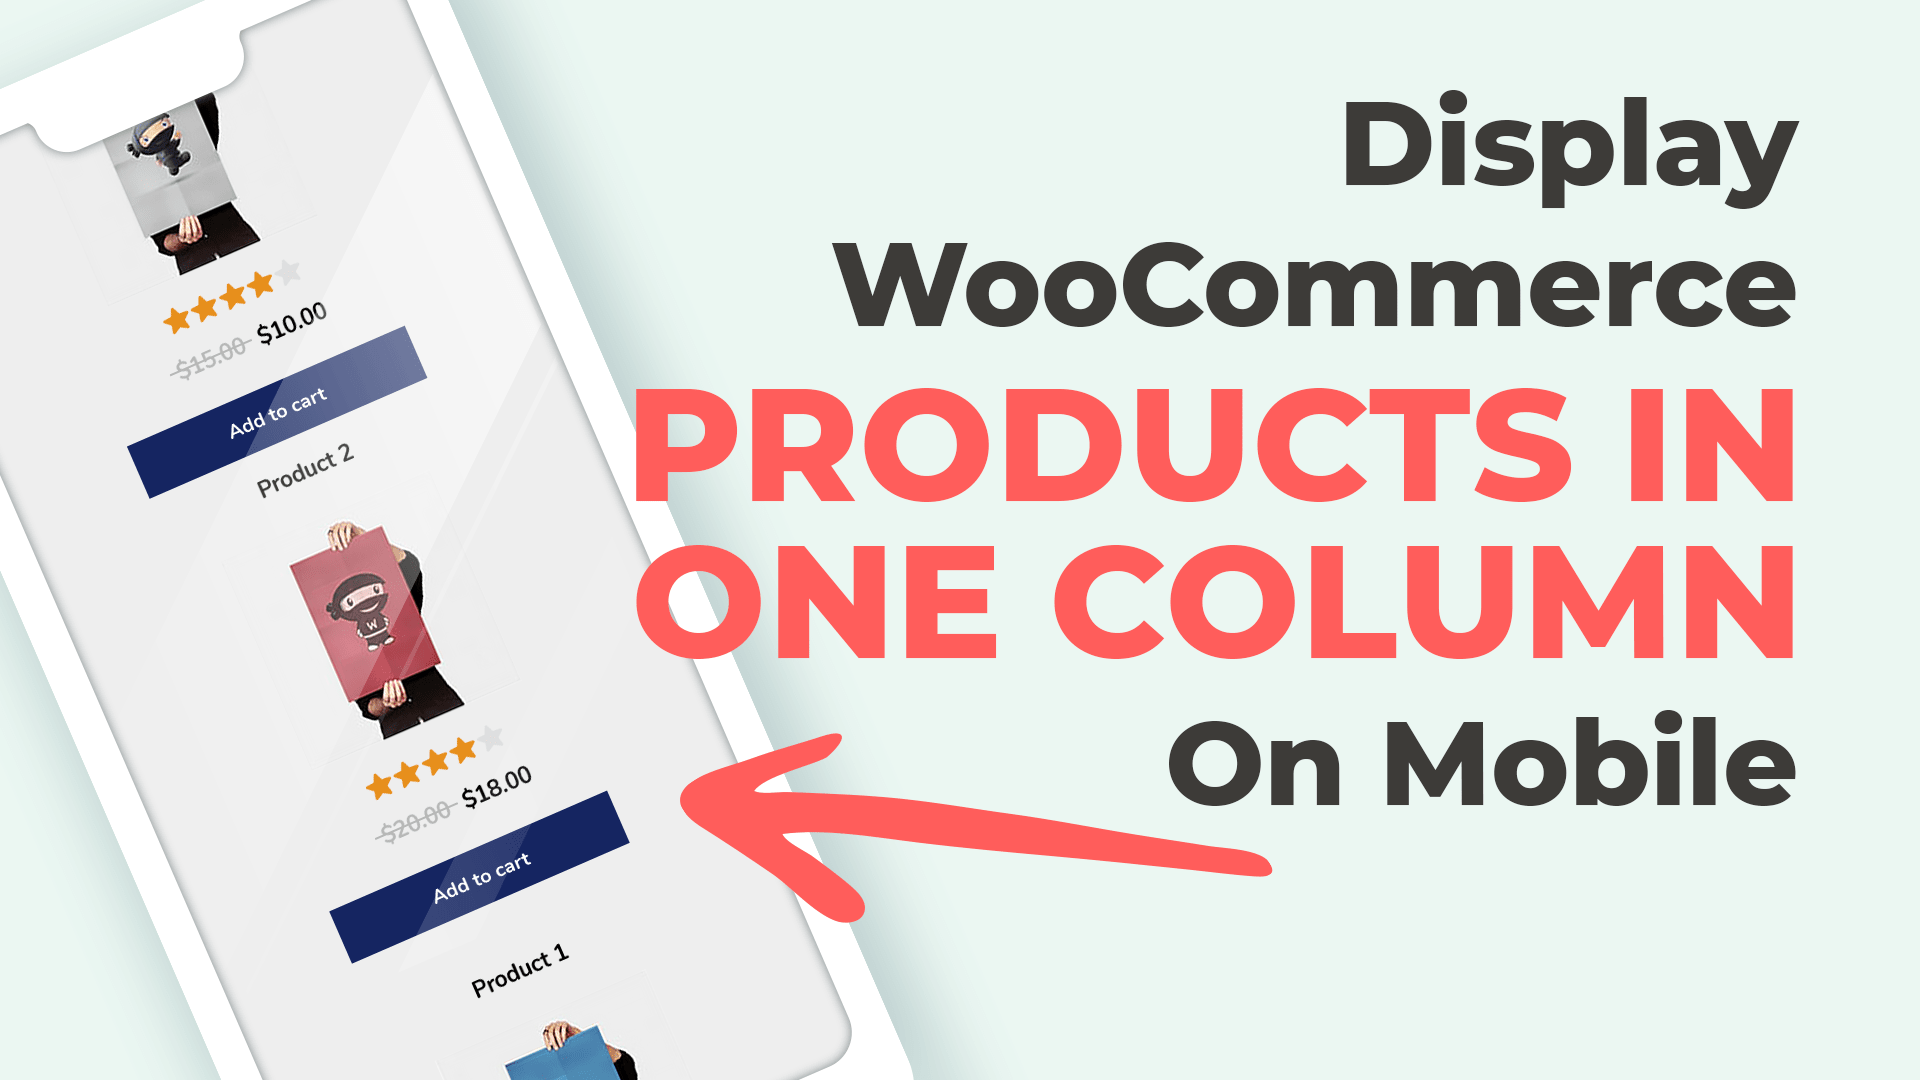 Display WooCommerce Products in Single Column on Mobile Devices